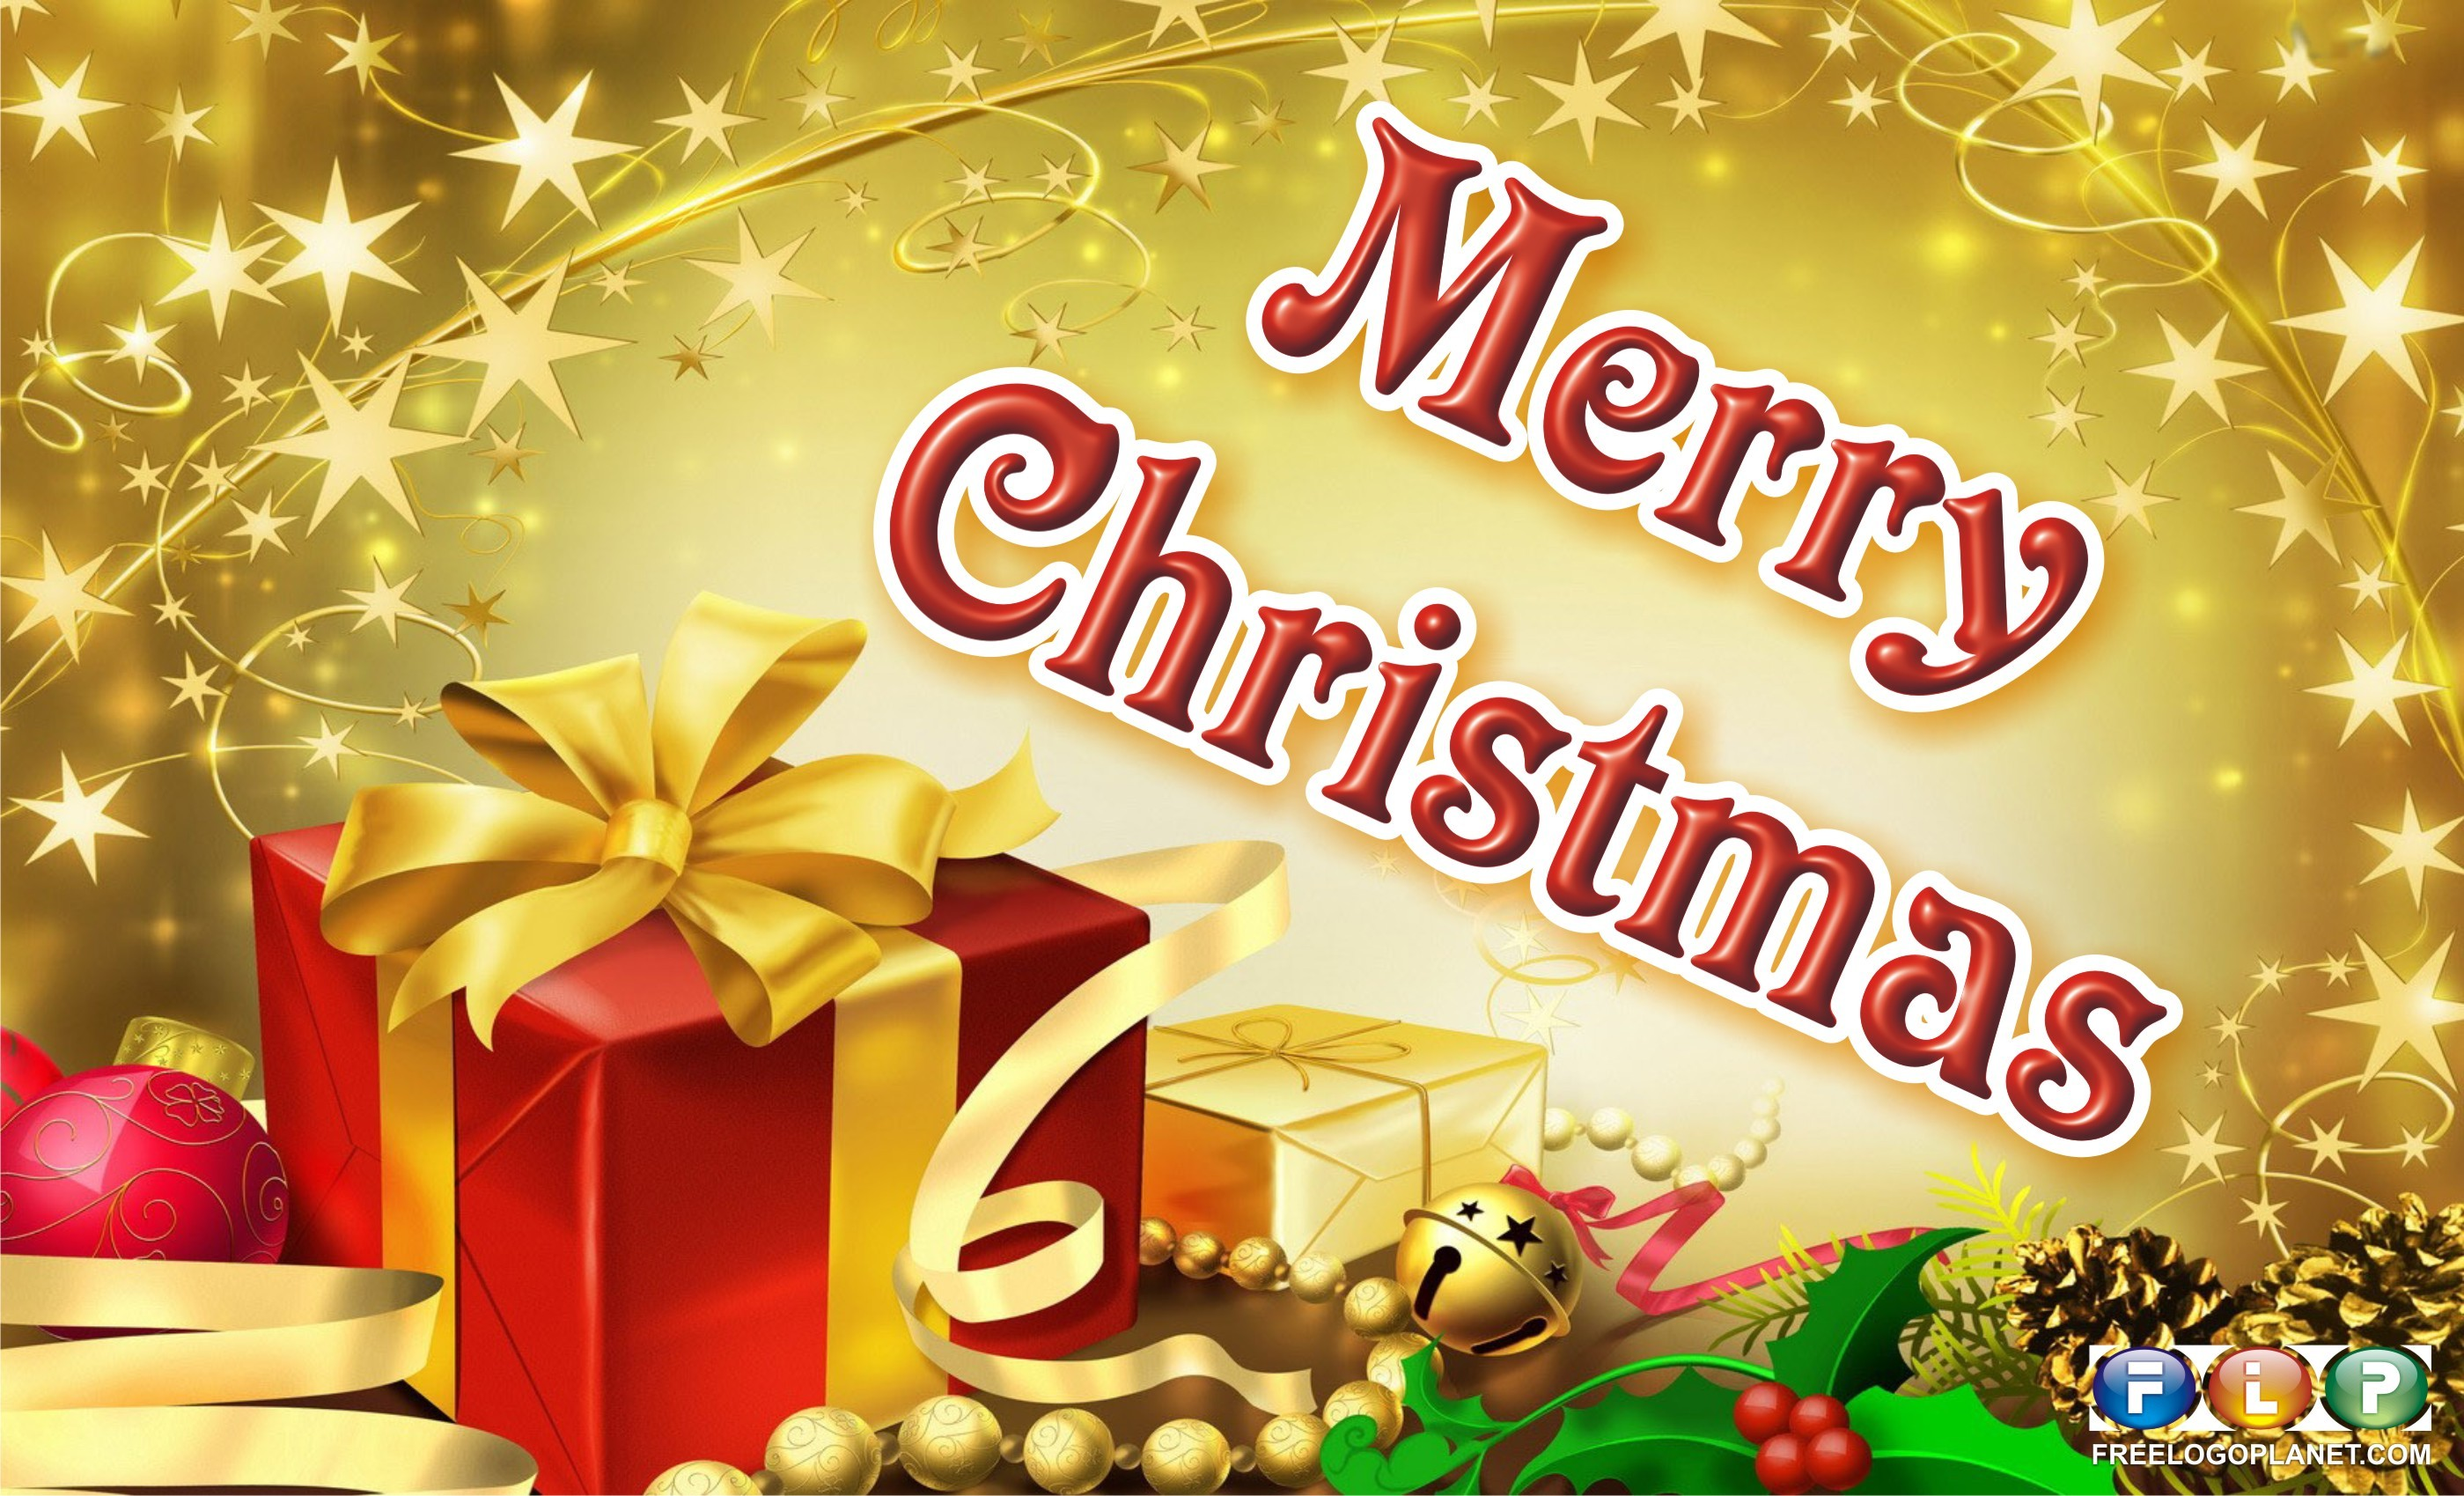 Merry Xmas Wallpapers For Android On Wallpaper Hd 2799 x 1699 px 1.4 MB  christmas happy